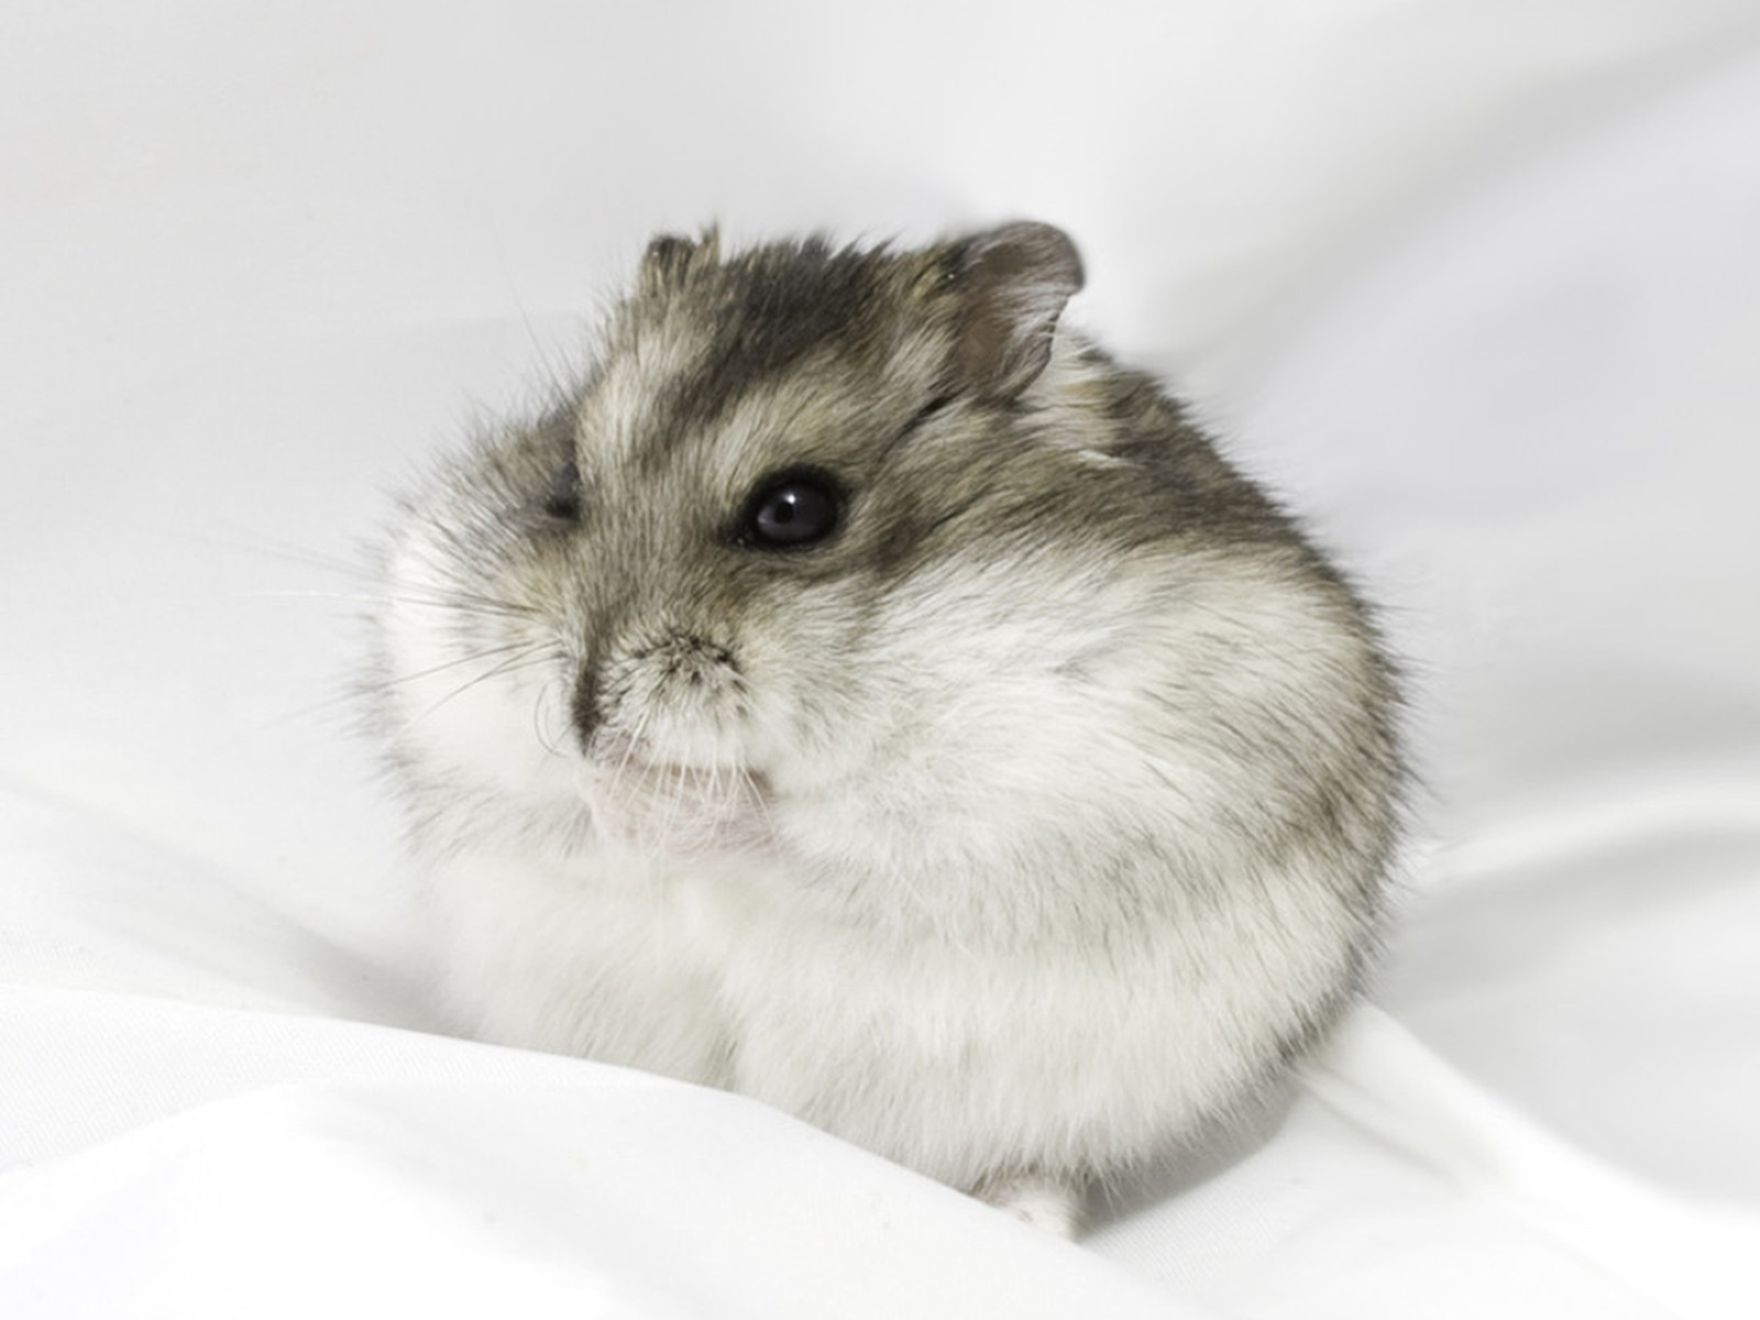 Download free HD Cute Flat Hamster Wallpaper, image